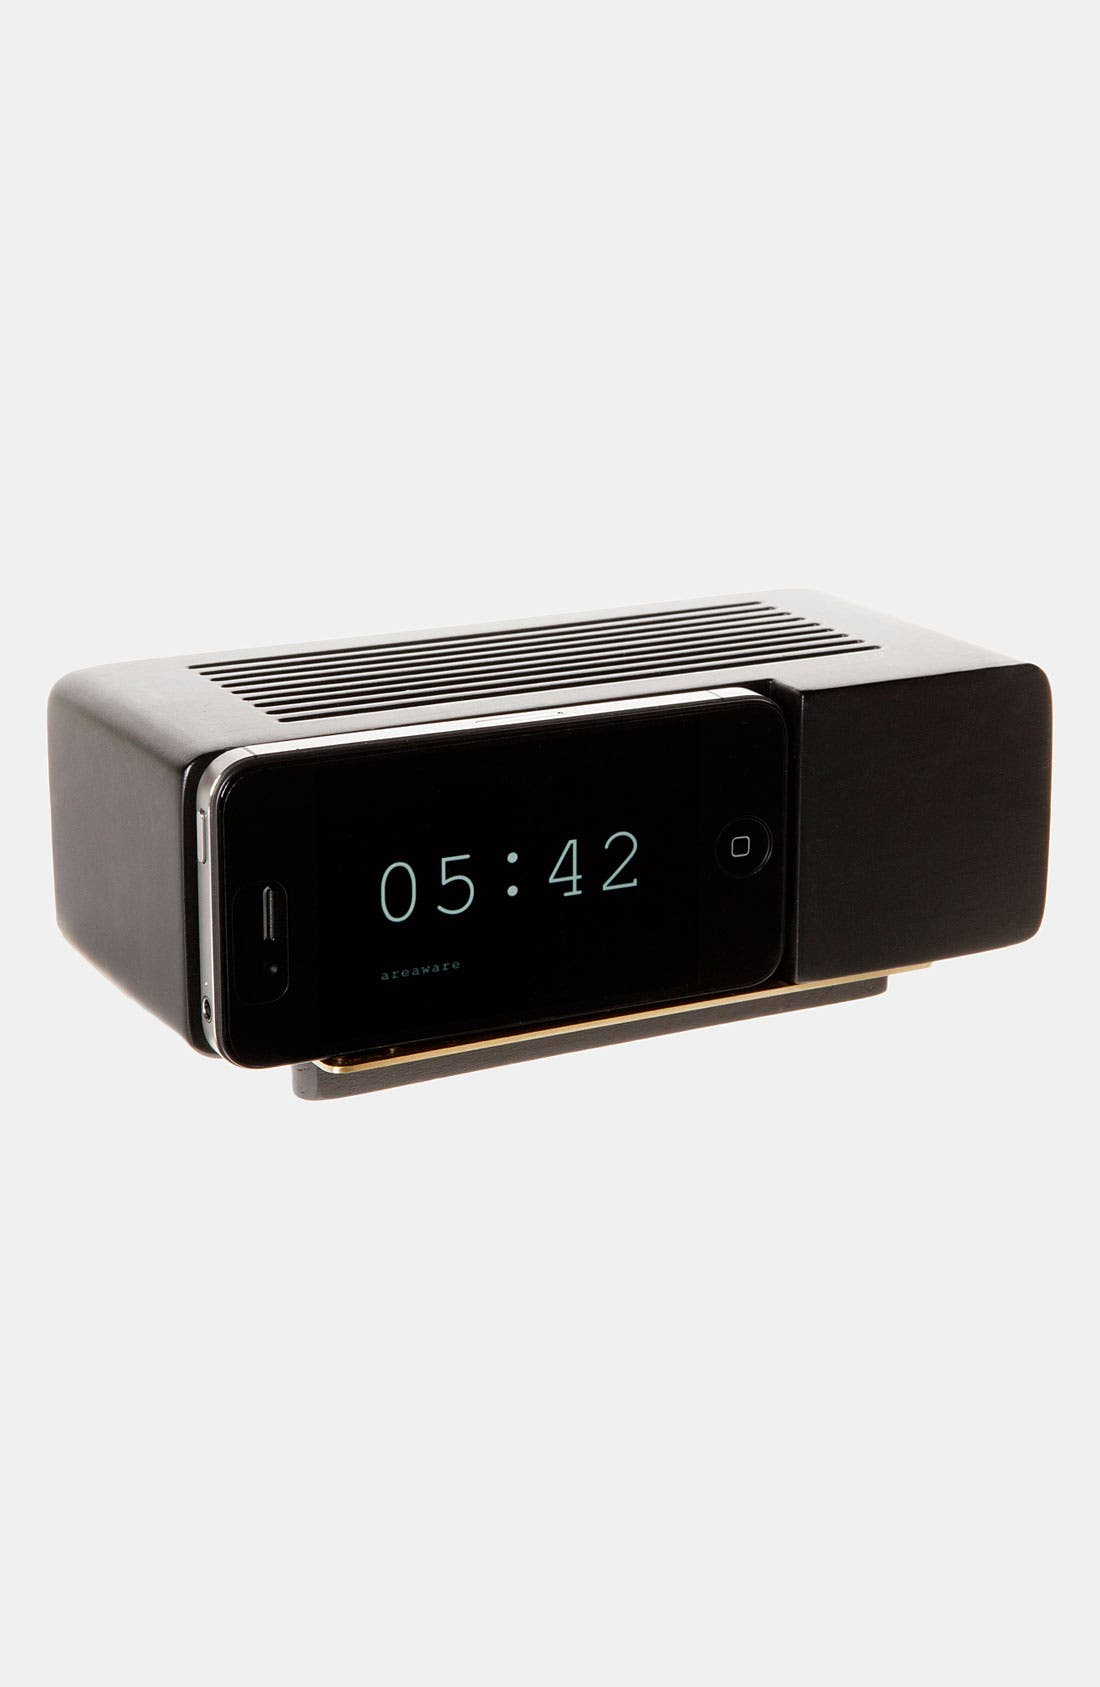 Main Image - Retro iPhone Alarm Dock